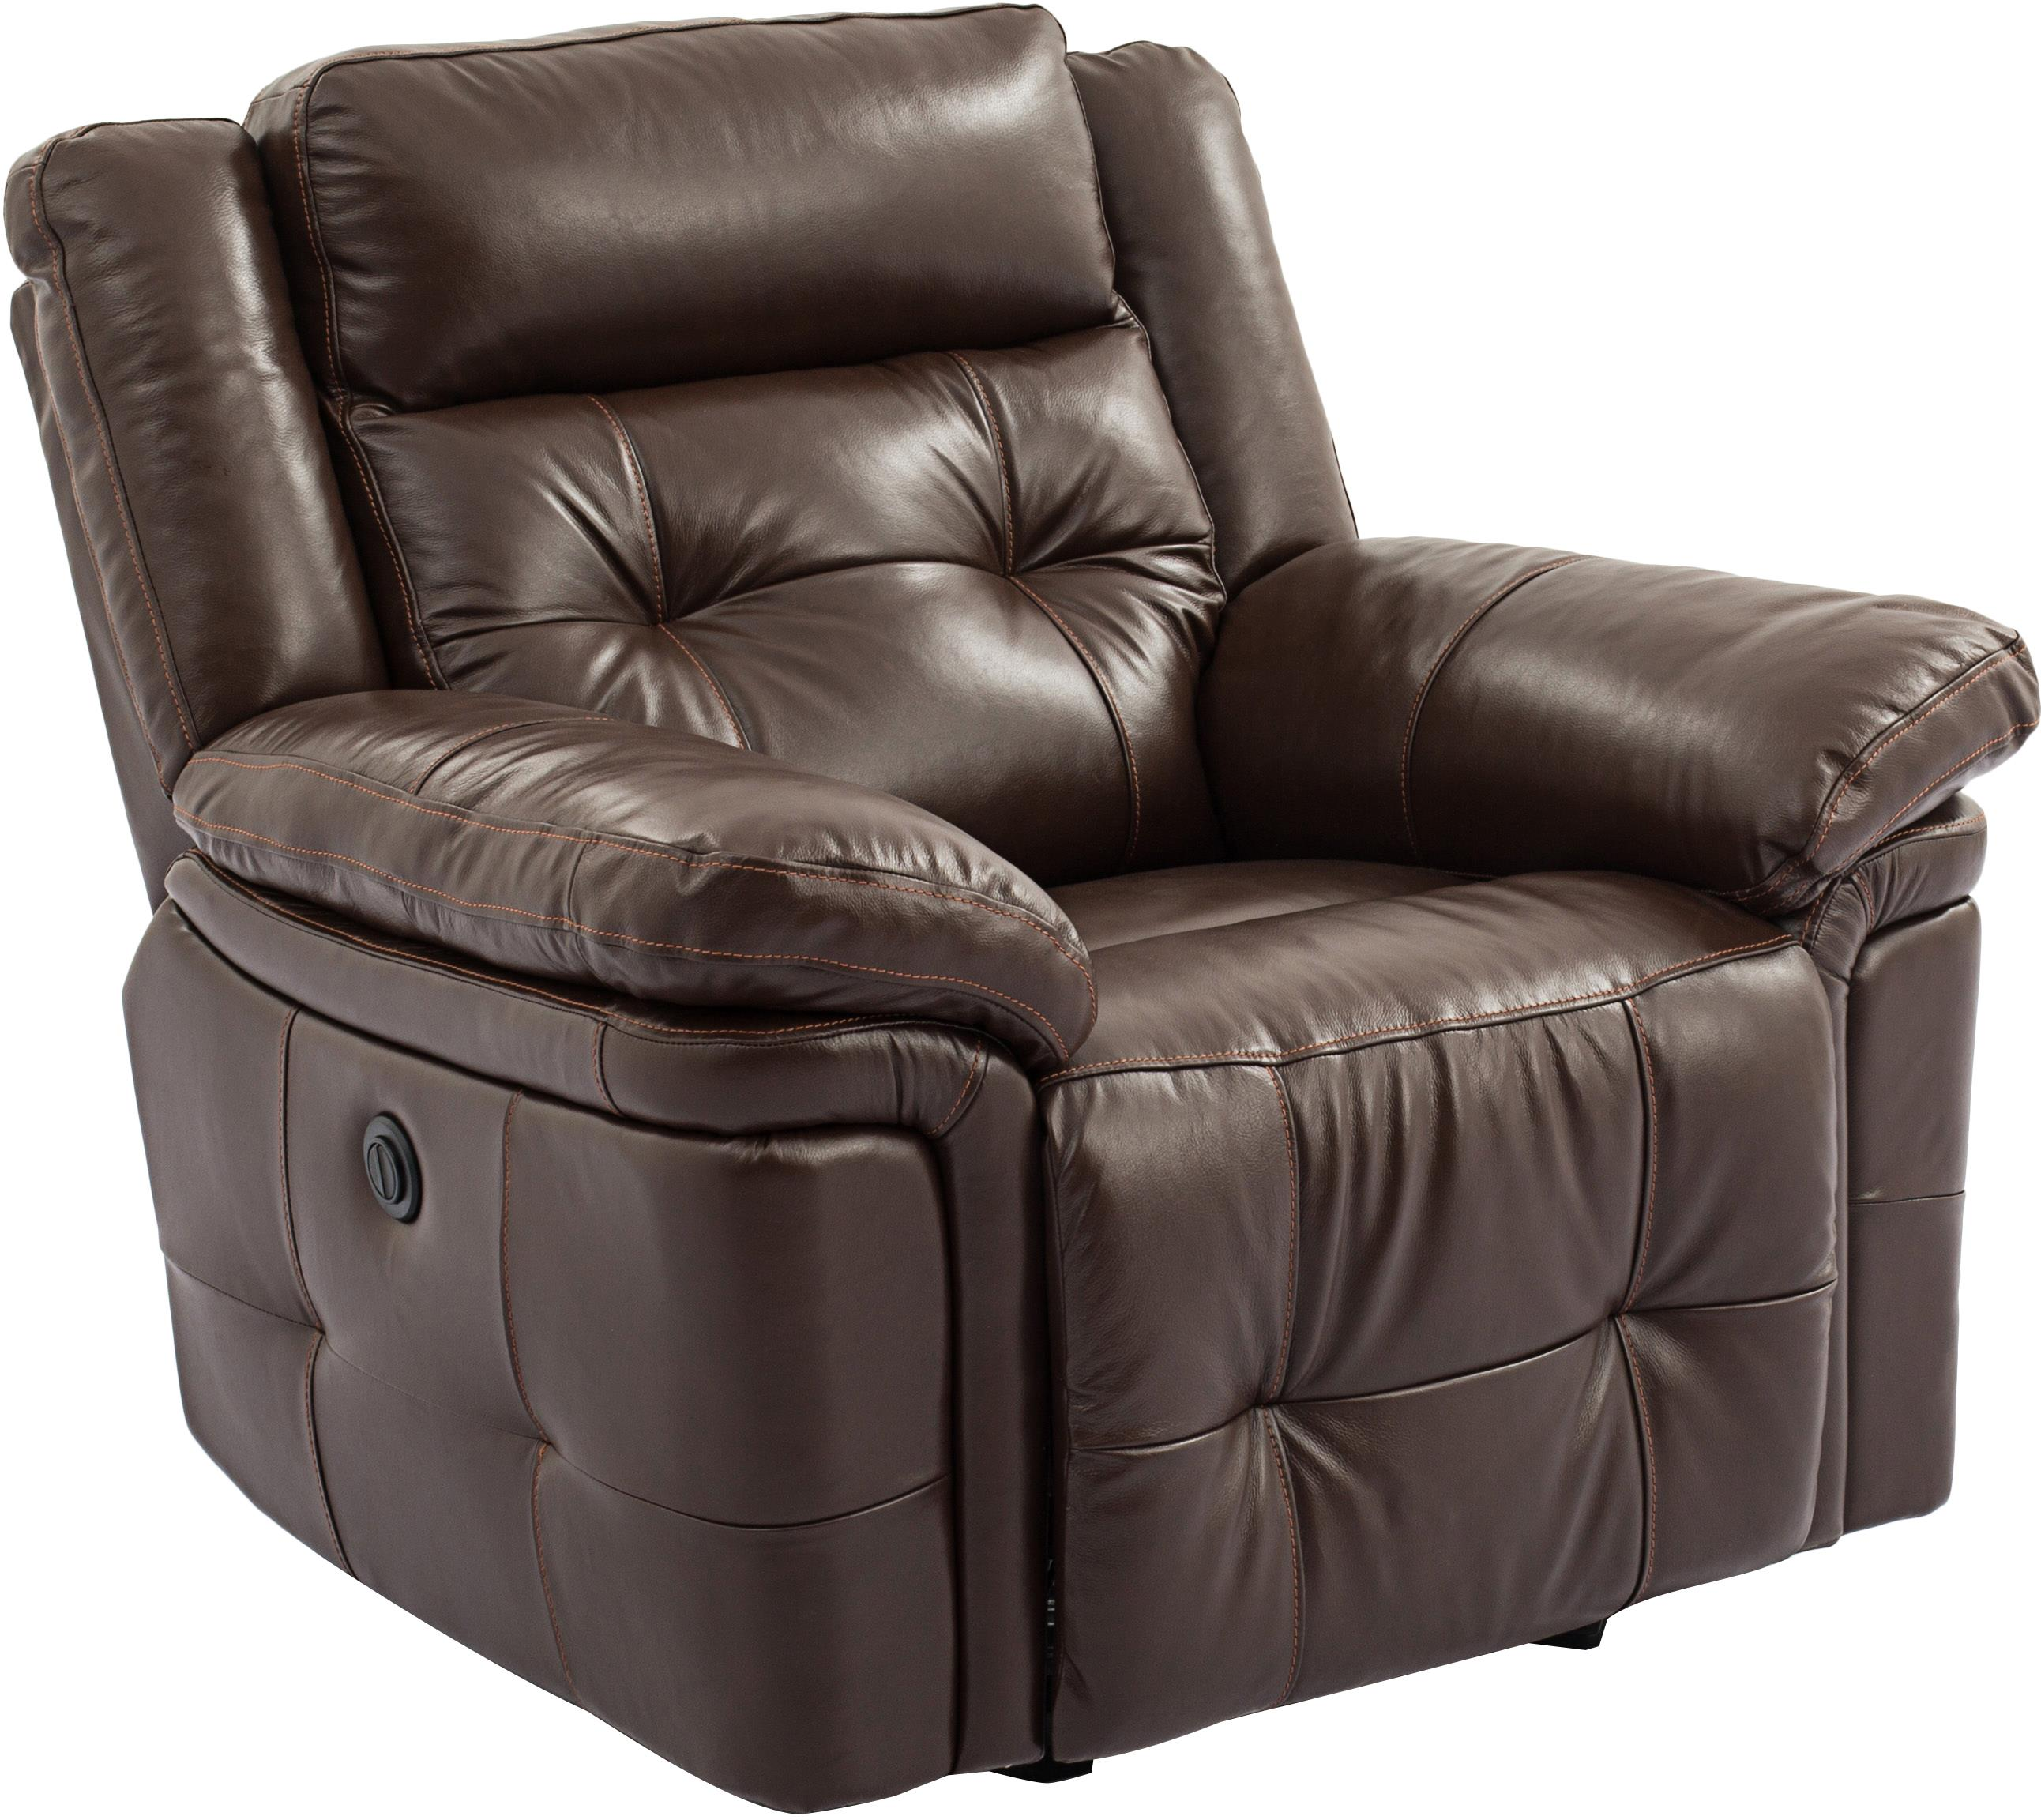 UXW9857 Glider Recliner by Cheers Sofa at Lagniappe Home Store